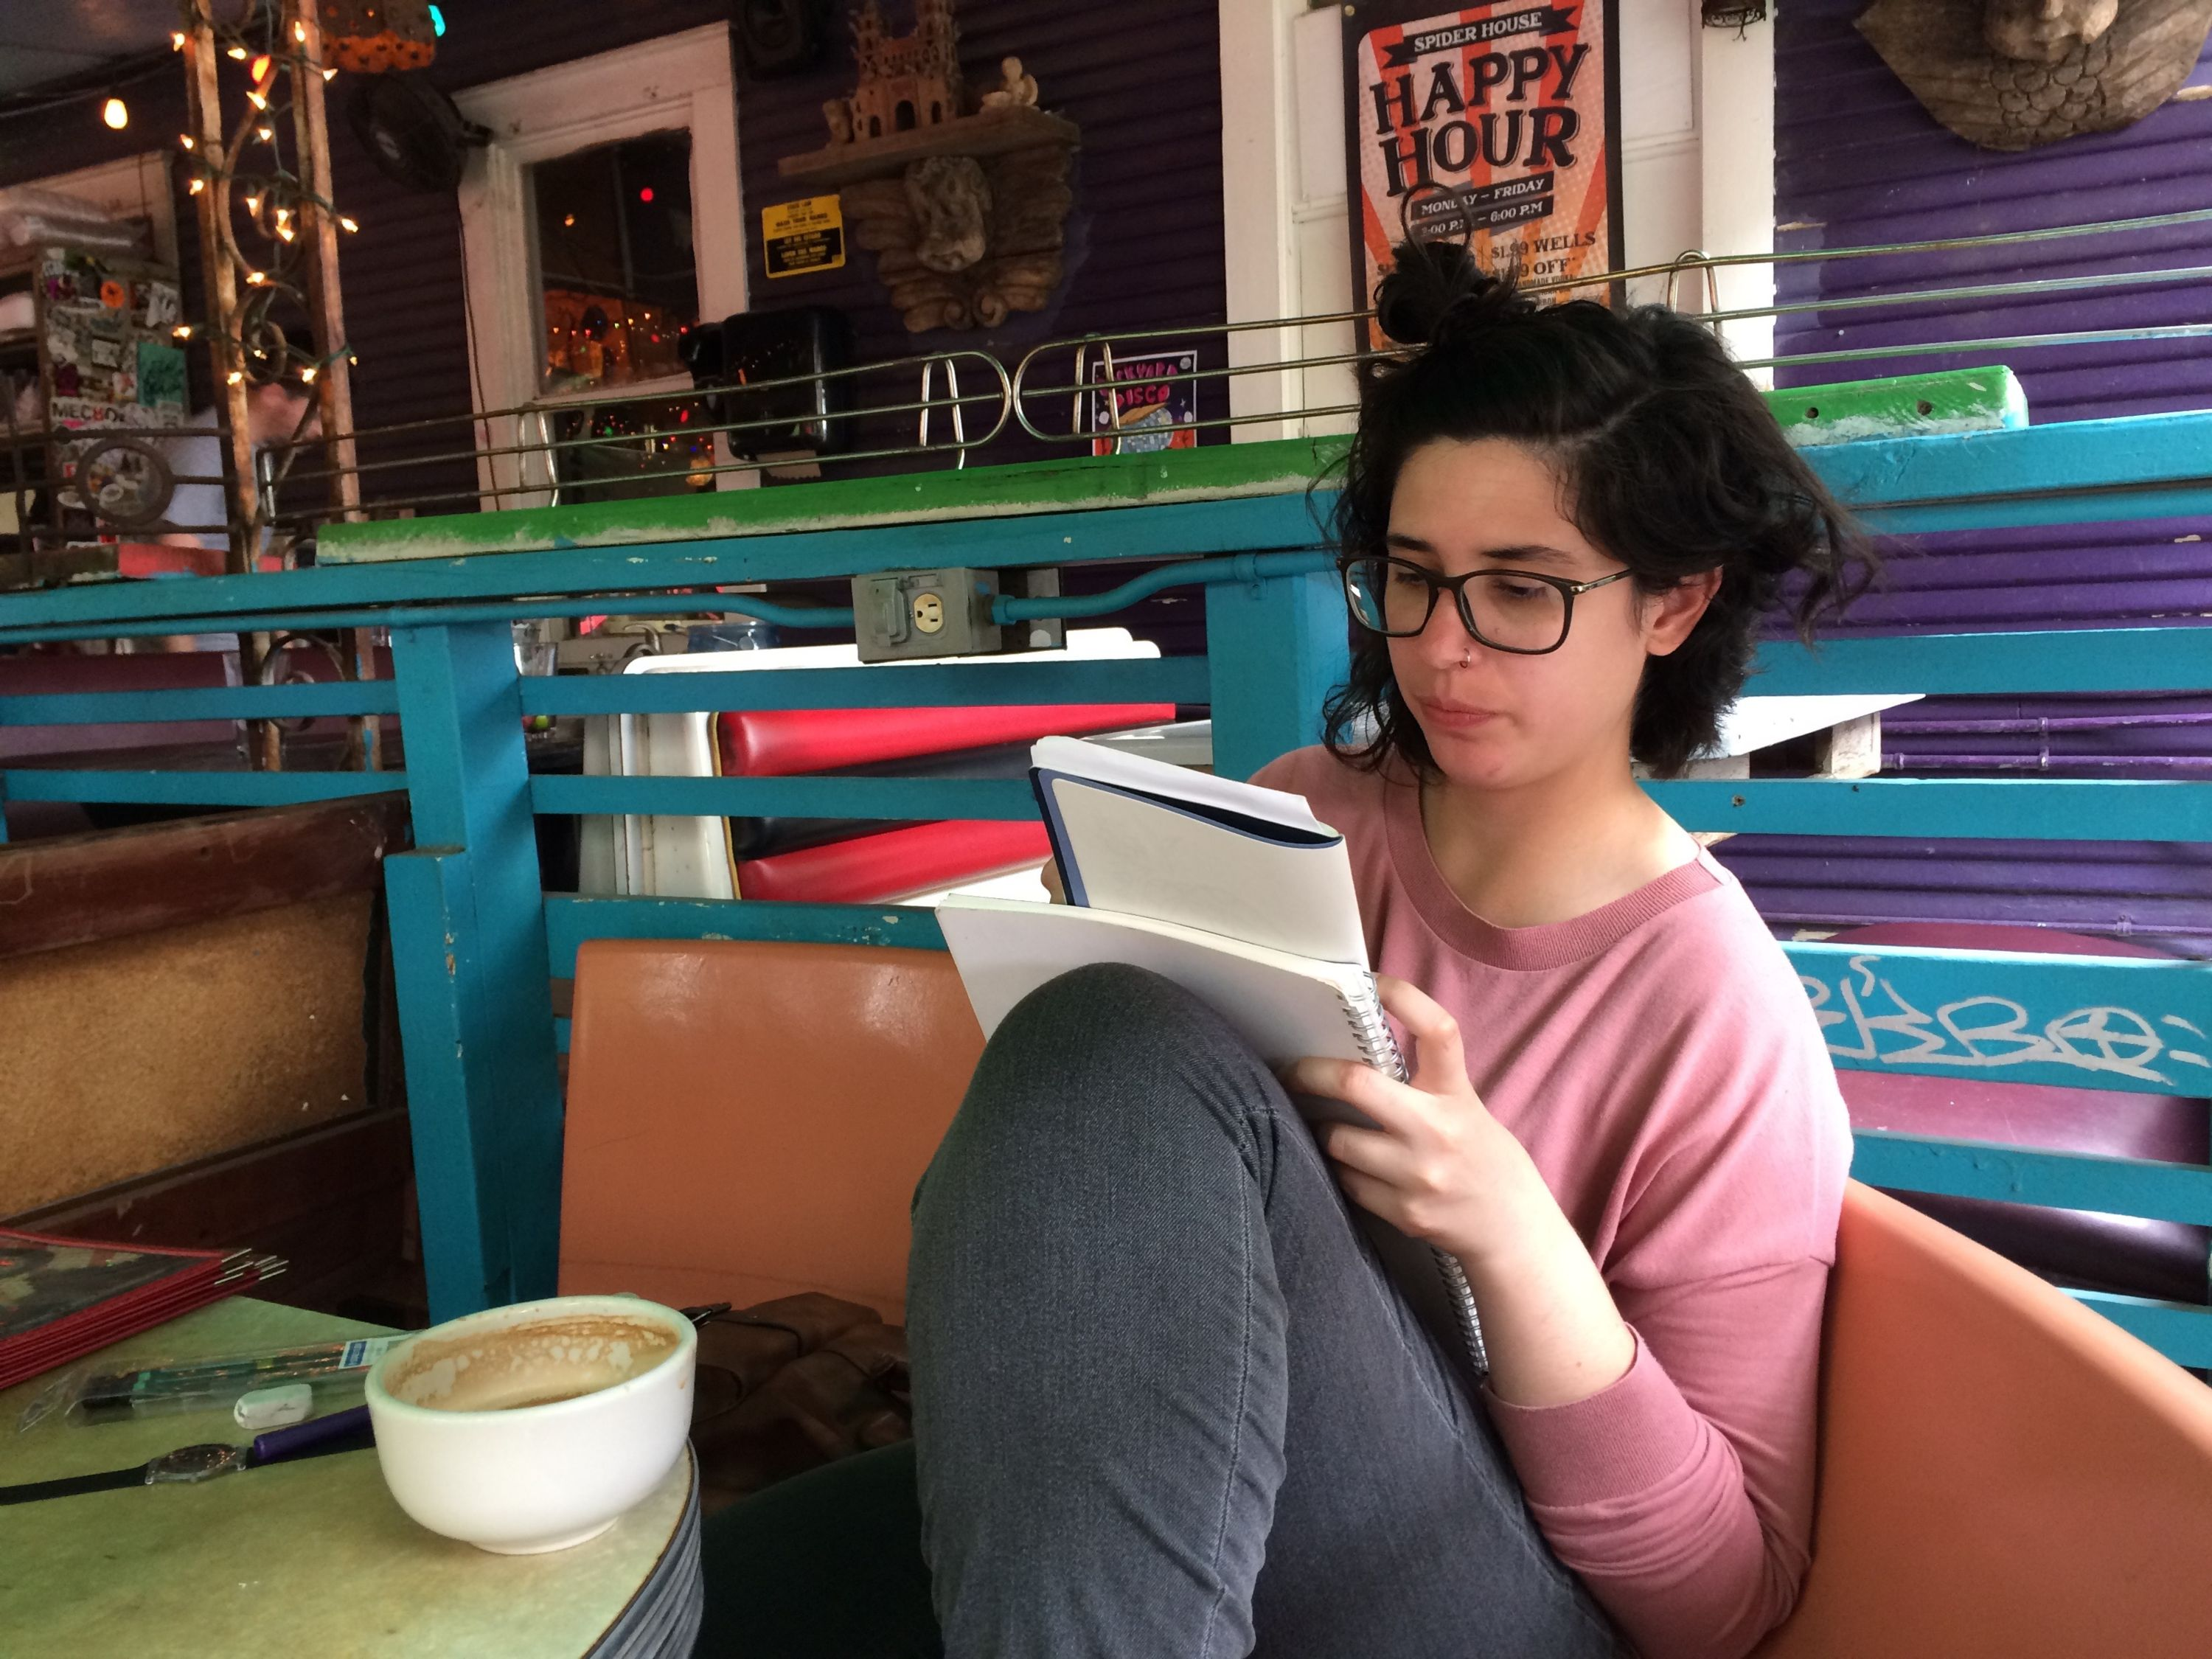 Sofia reading photo, in Austin